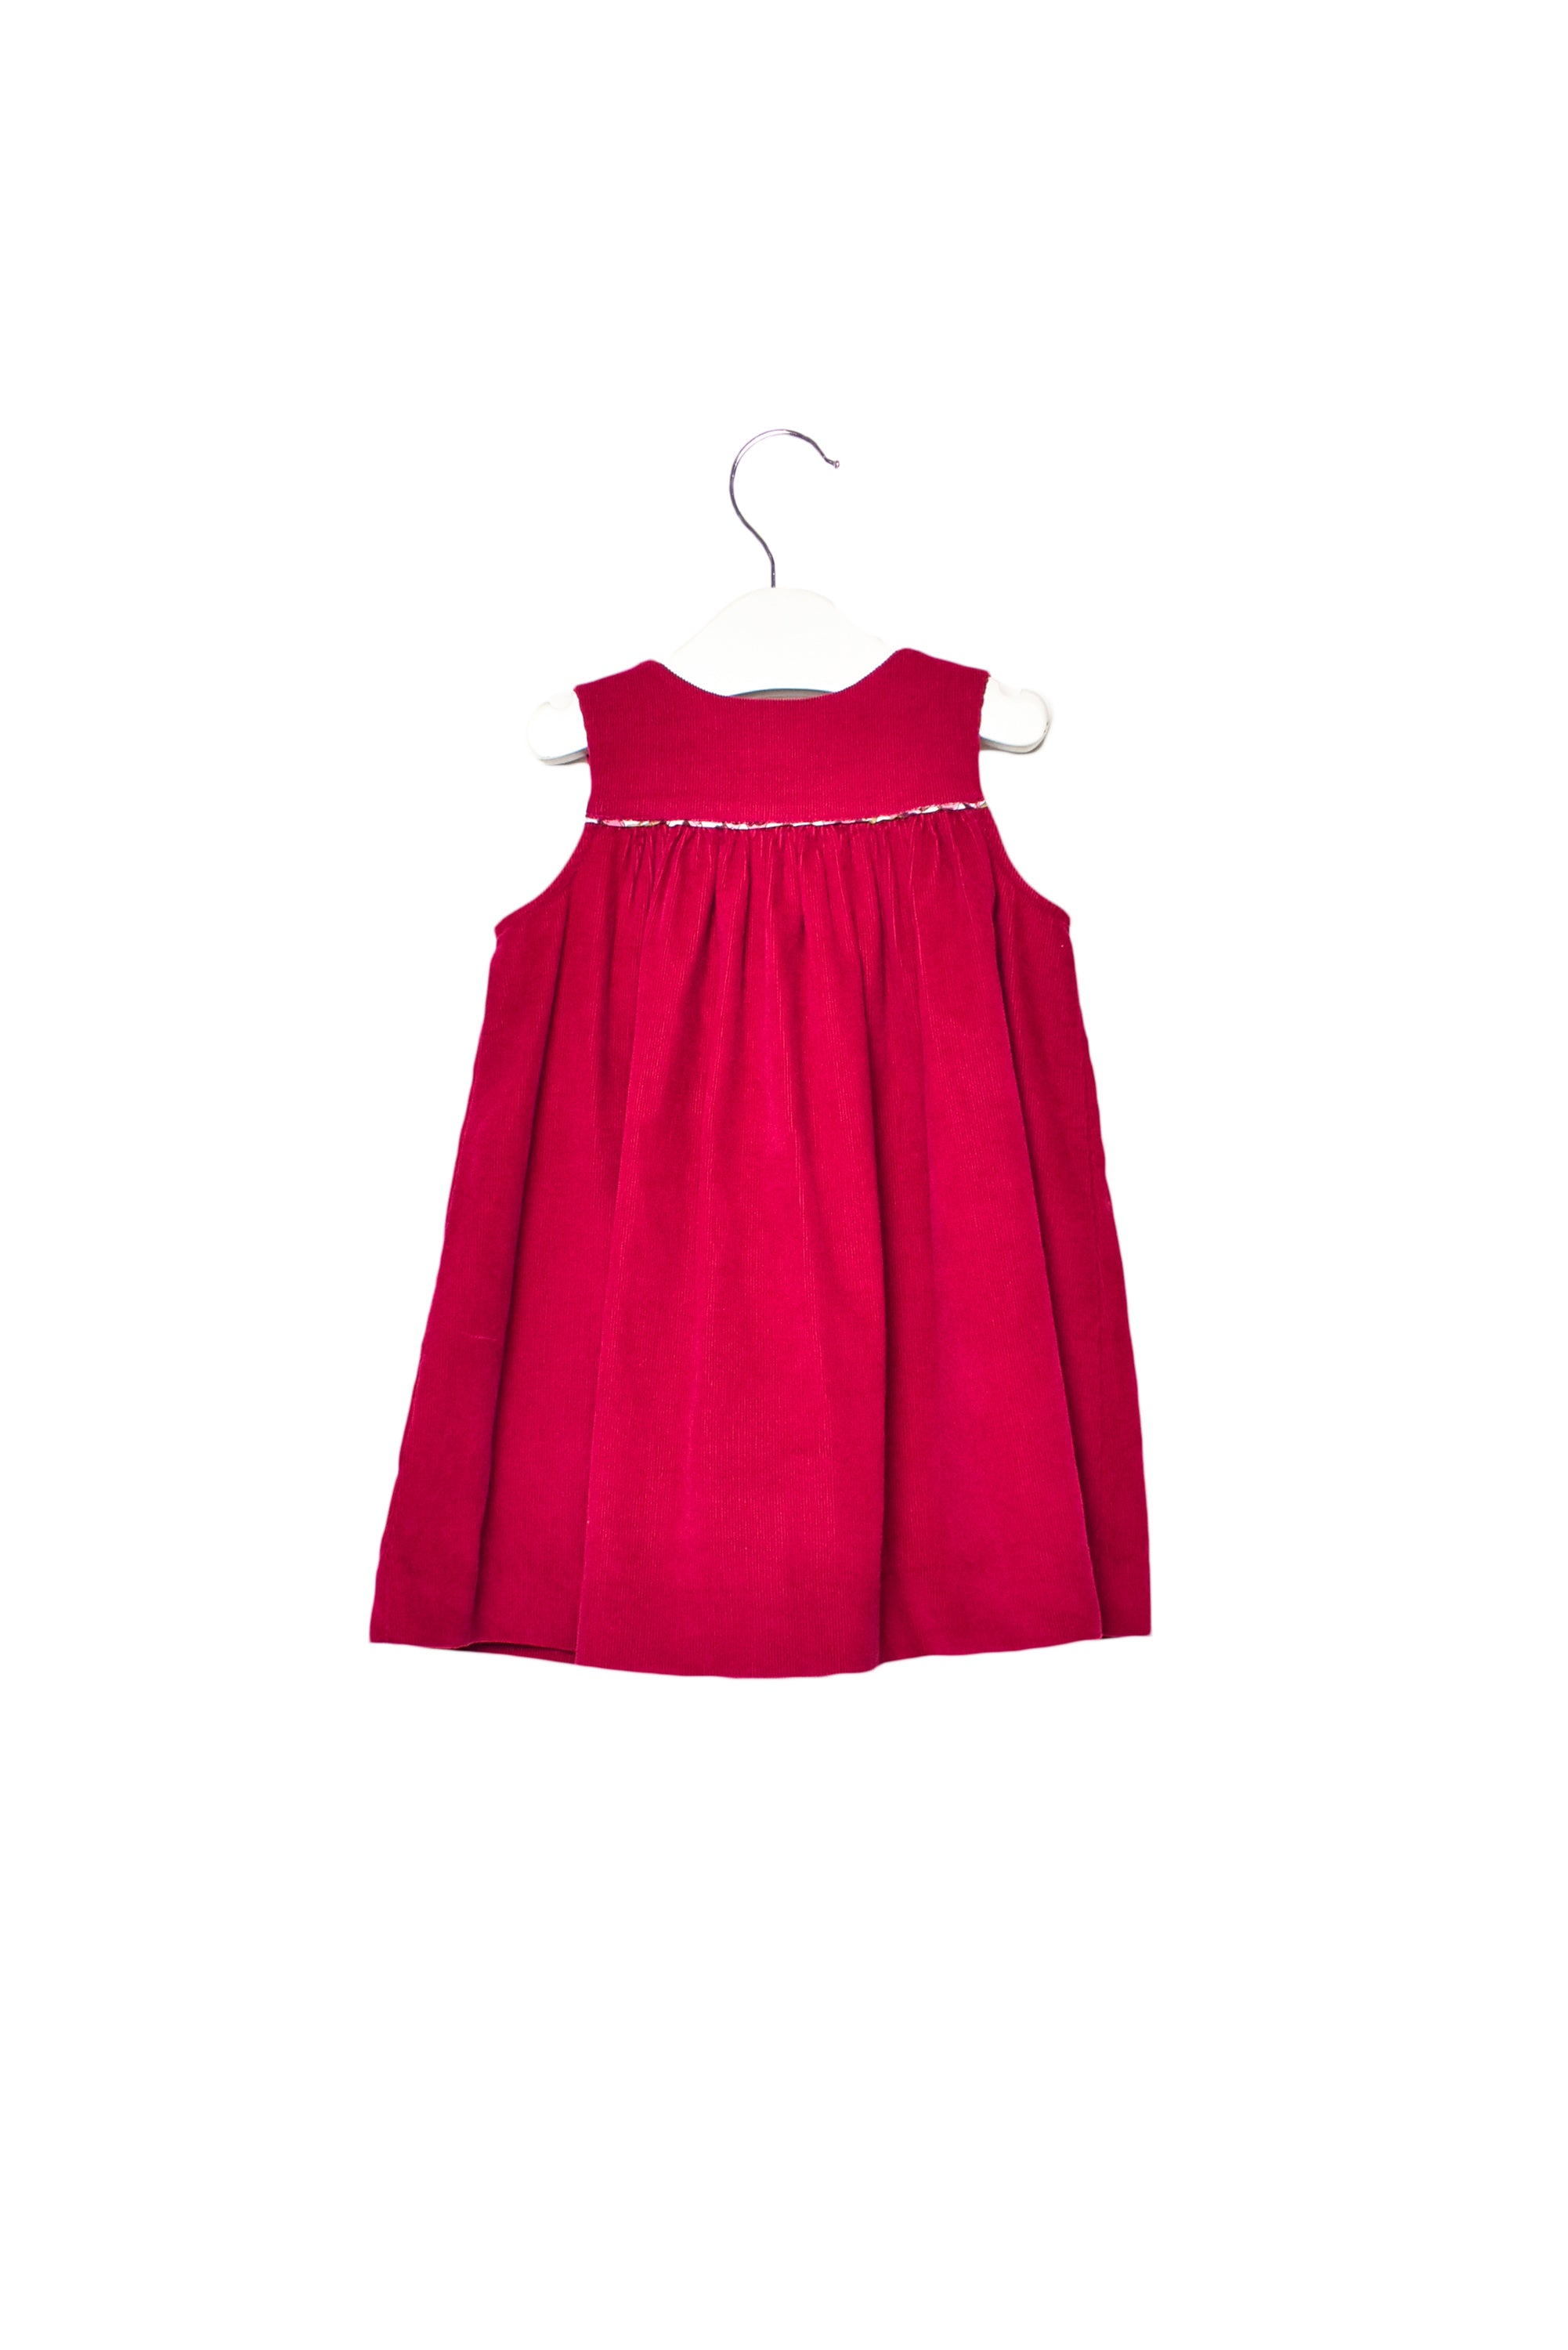 10012070 Jacadi Baby~Dress 12M at Retykle